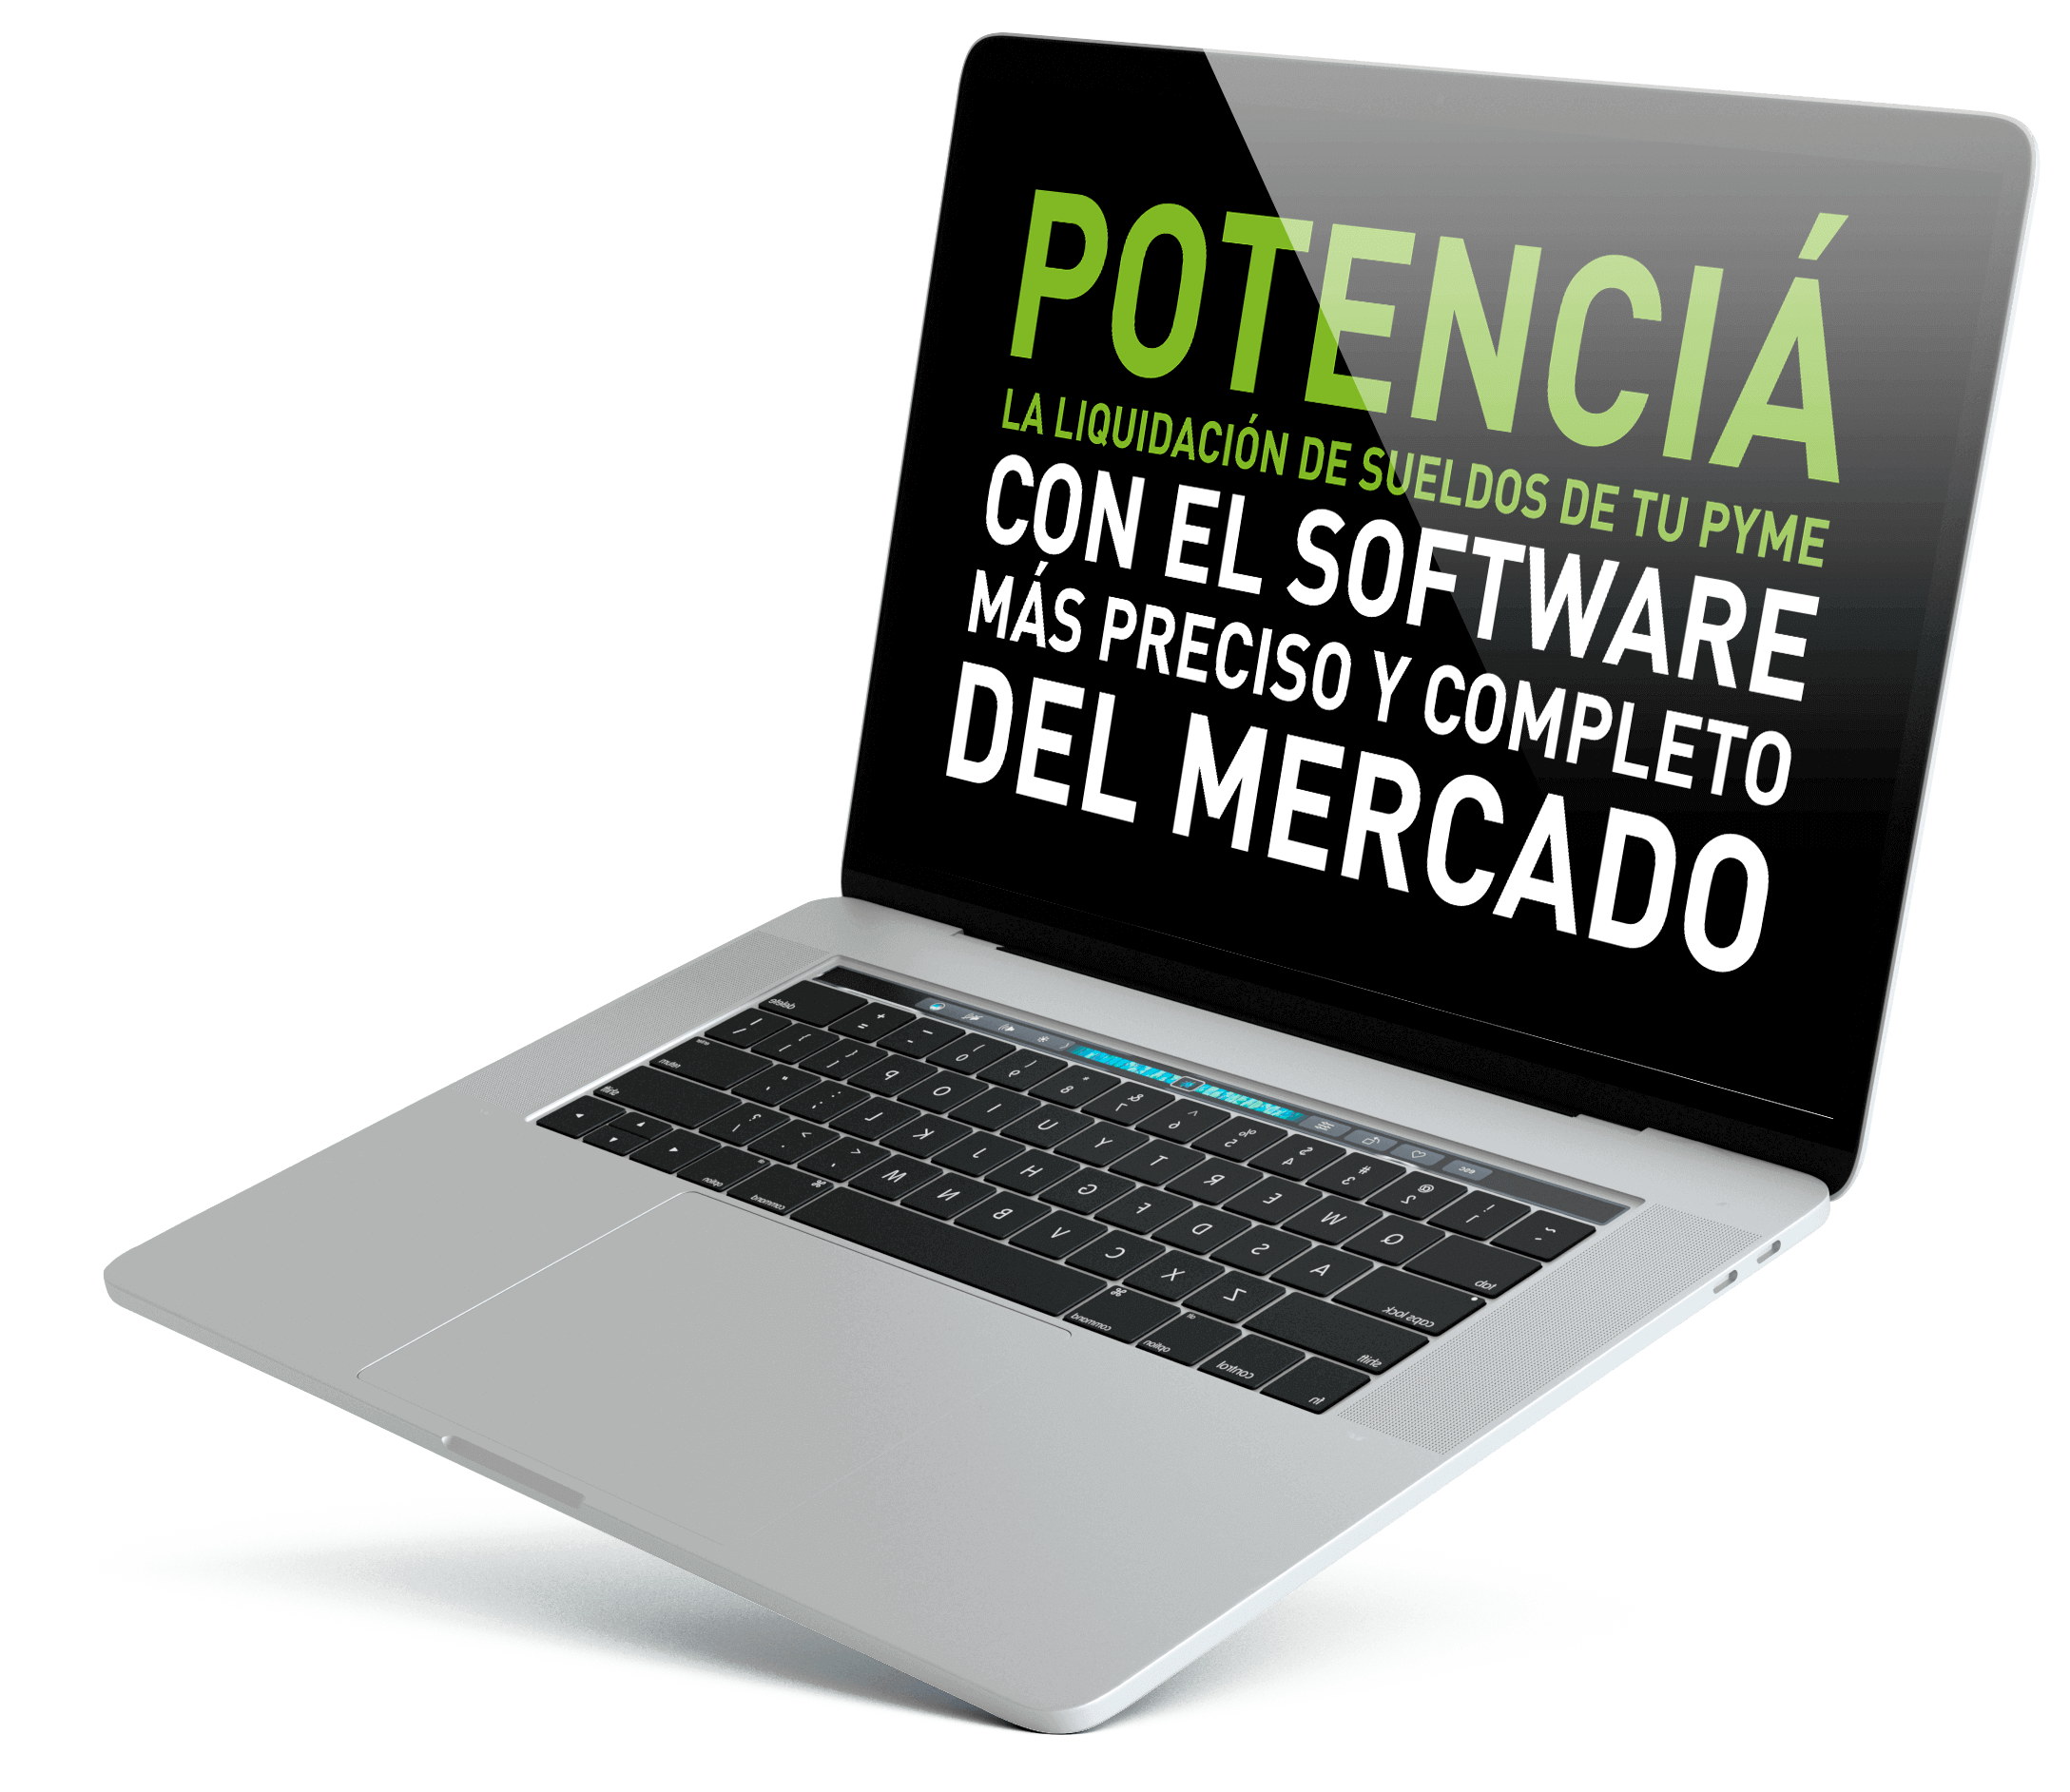 El Software Contable más preciso del mercado